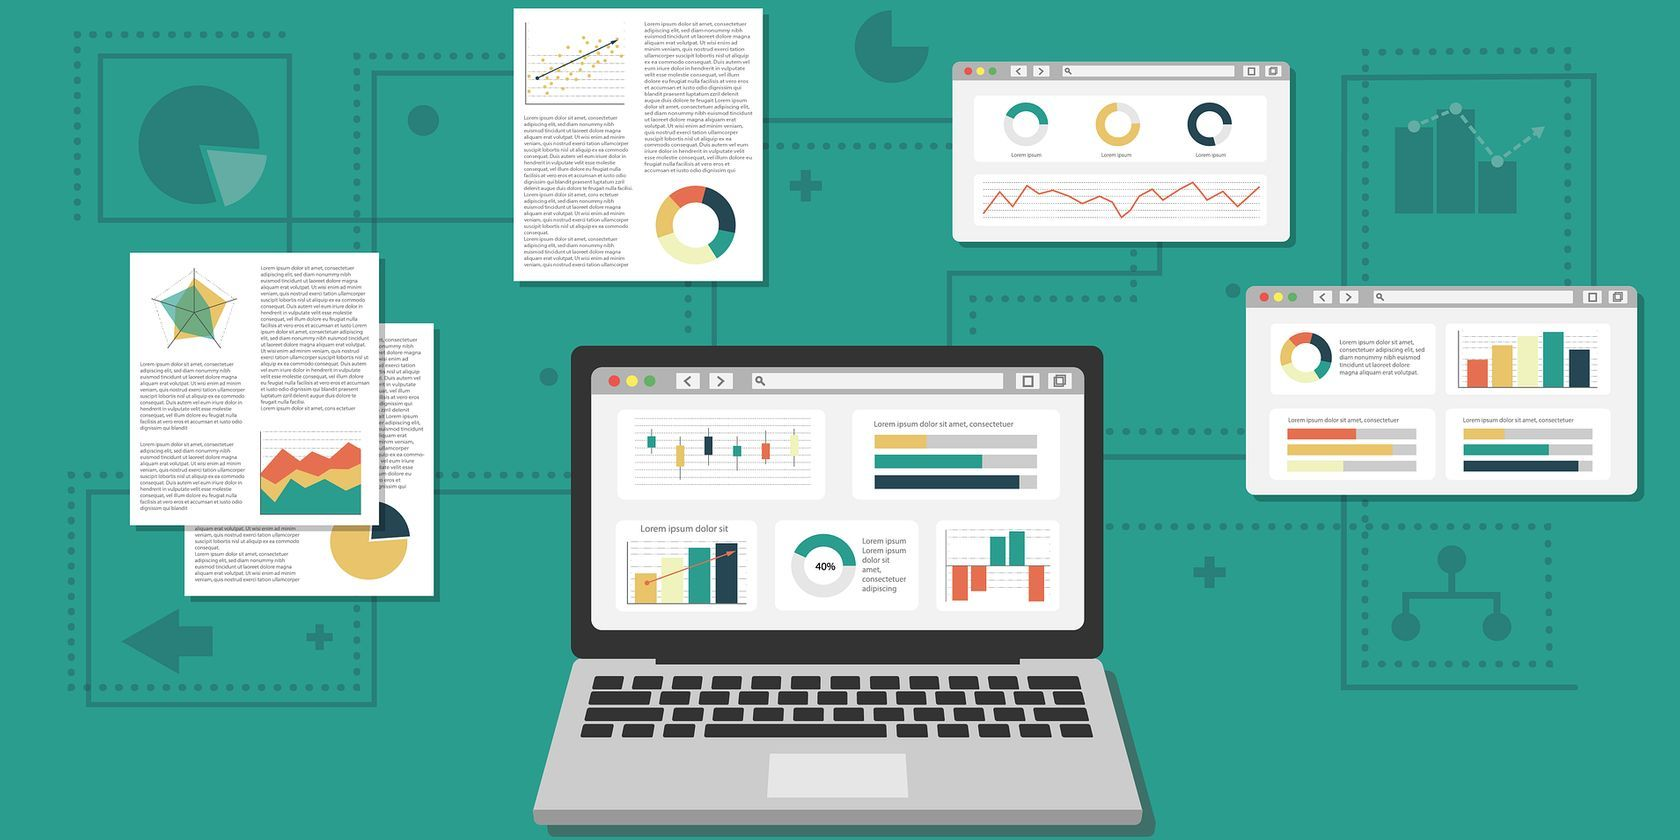 8 Ways to Organize Your Spreadsheets in Excel